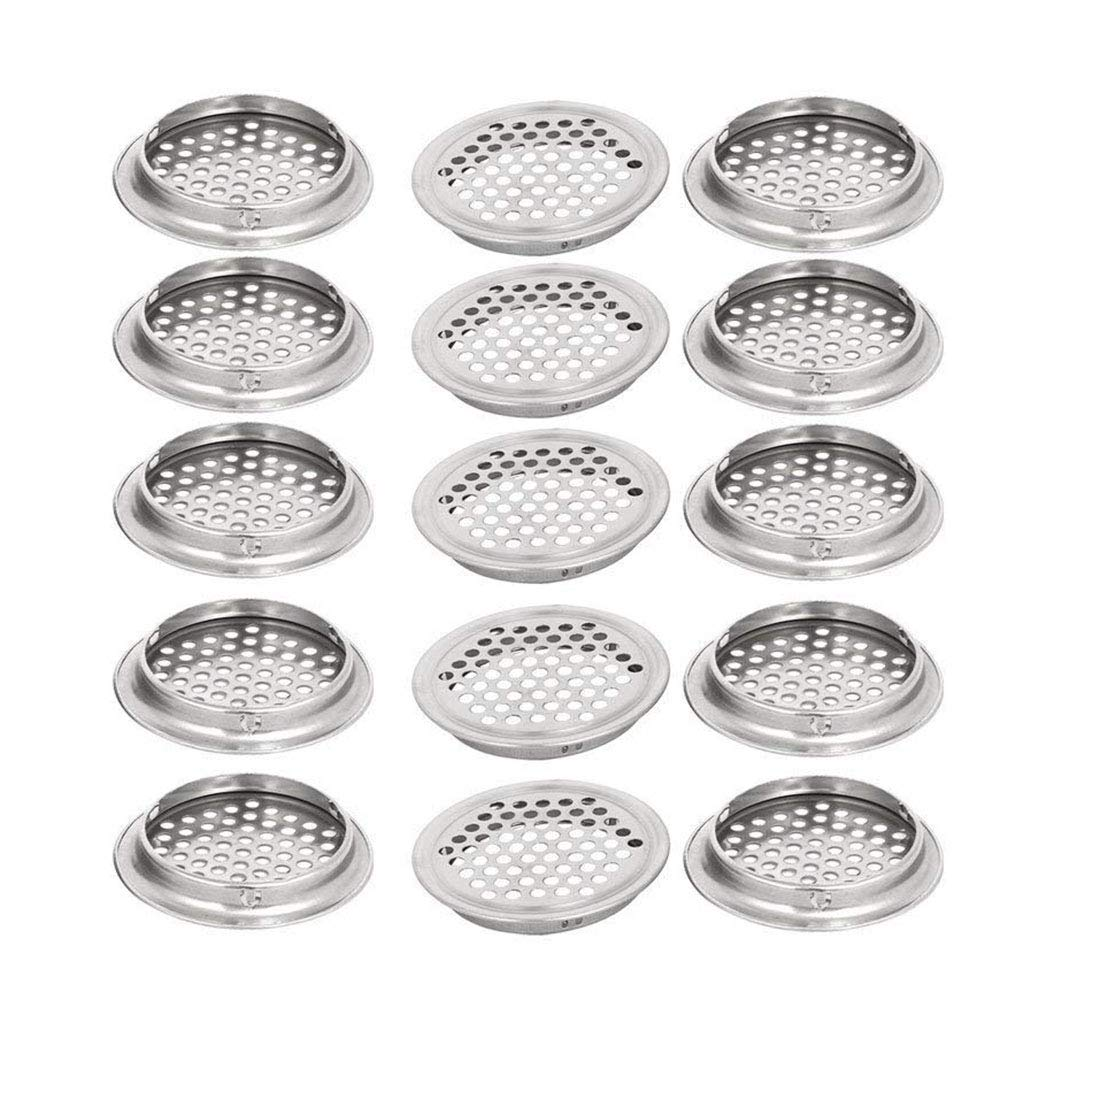 LDEXIN 15pcs Stainless Steel Air Vent Louver 53mm/2.08'' Bottom Diameter Round Perforated Mesh Cabine Cupboard Hole Air Vent Cover Louver for Kitchen, Garderobe,Wardrobe,Bathroom(15Pcs)